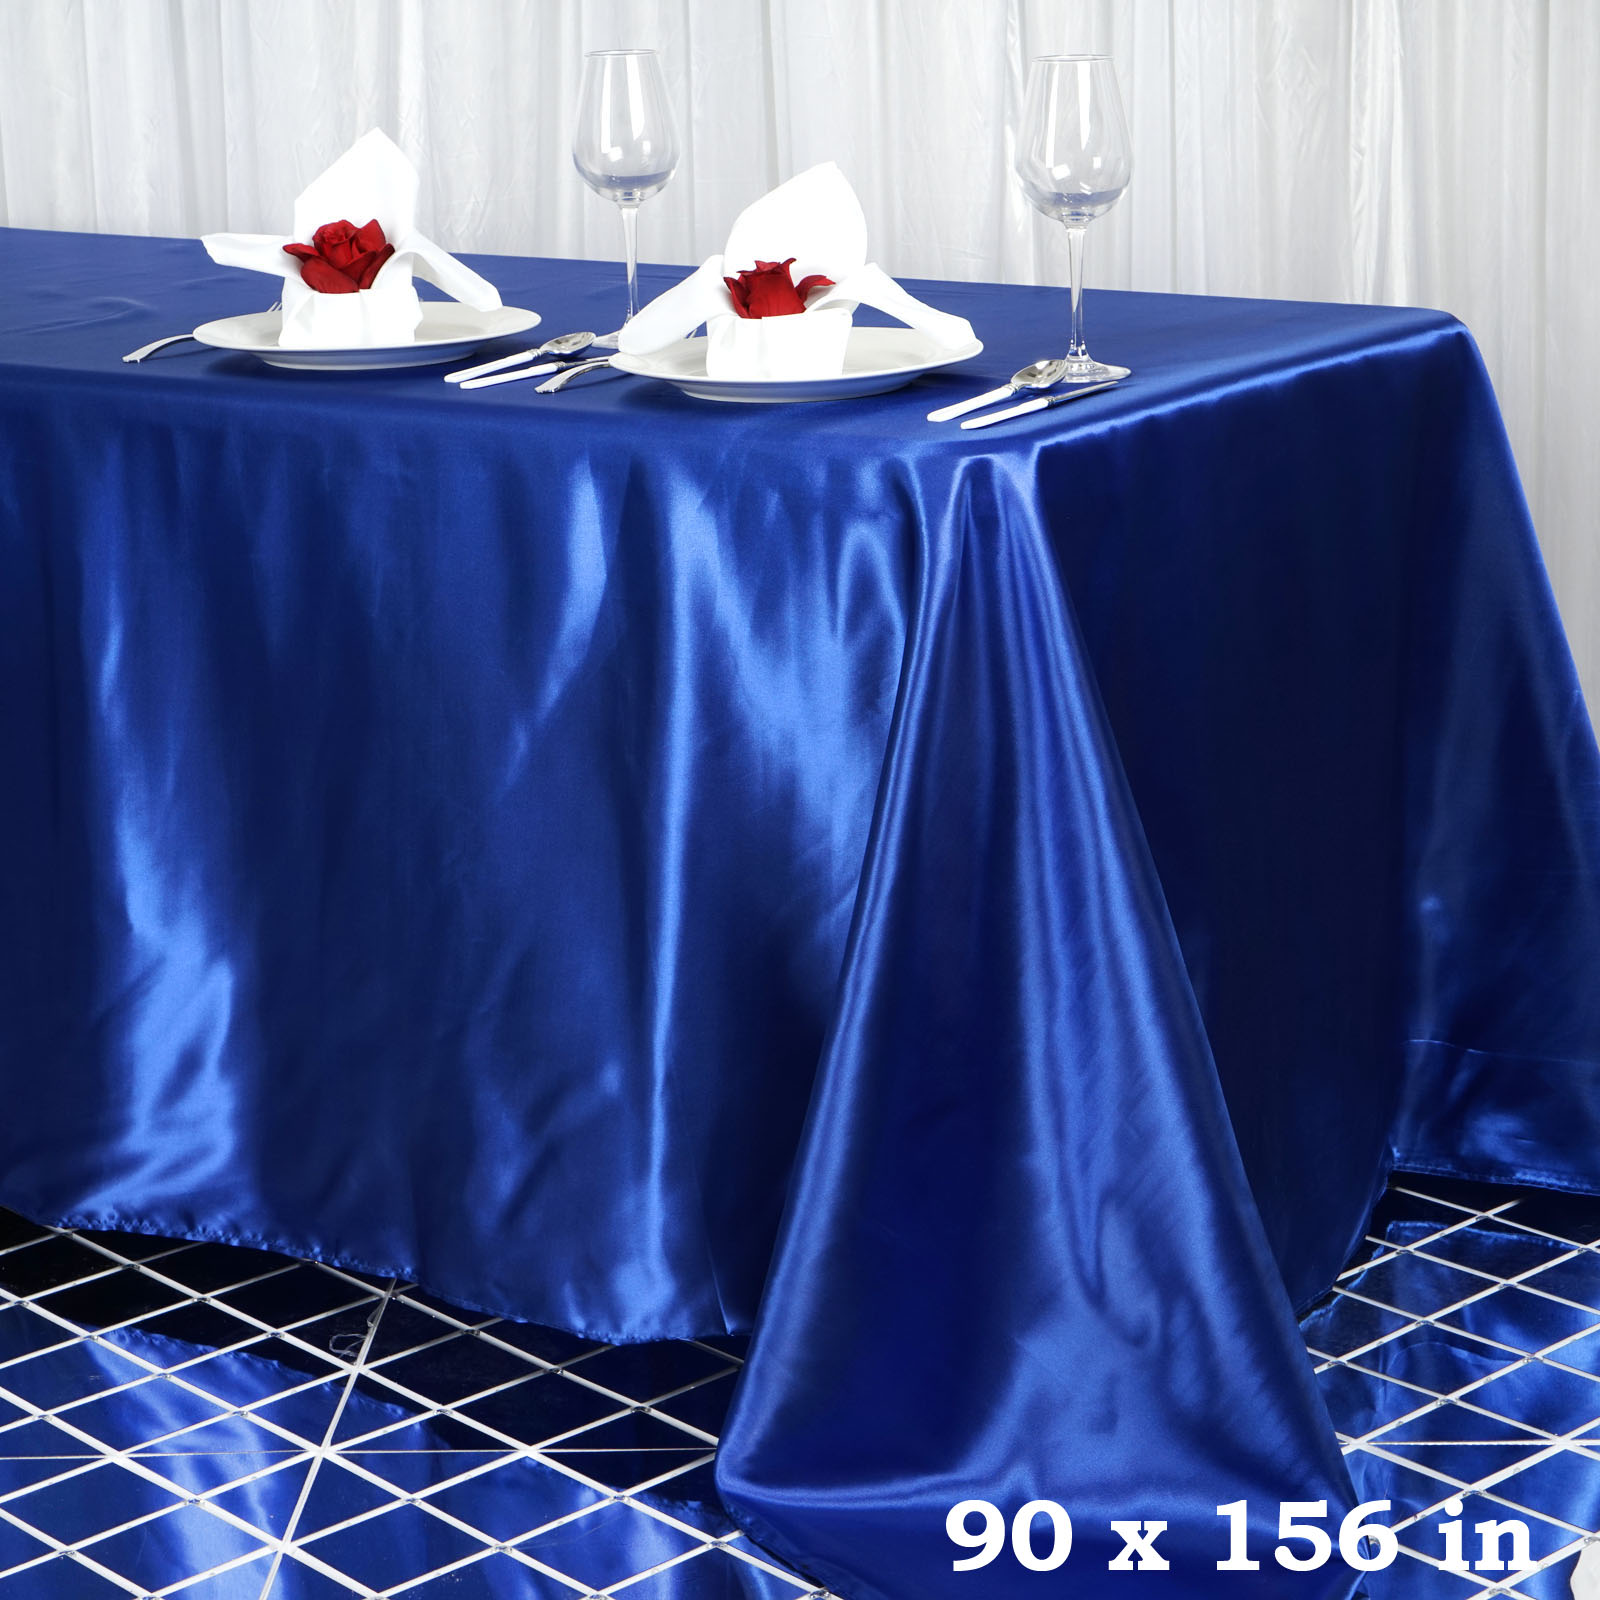 "BalsaCircle 90"" x 156"" Rectangular Satin Tablecloth Table Covers for Party... by BalsaCircle"